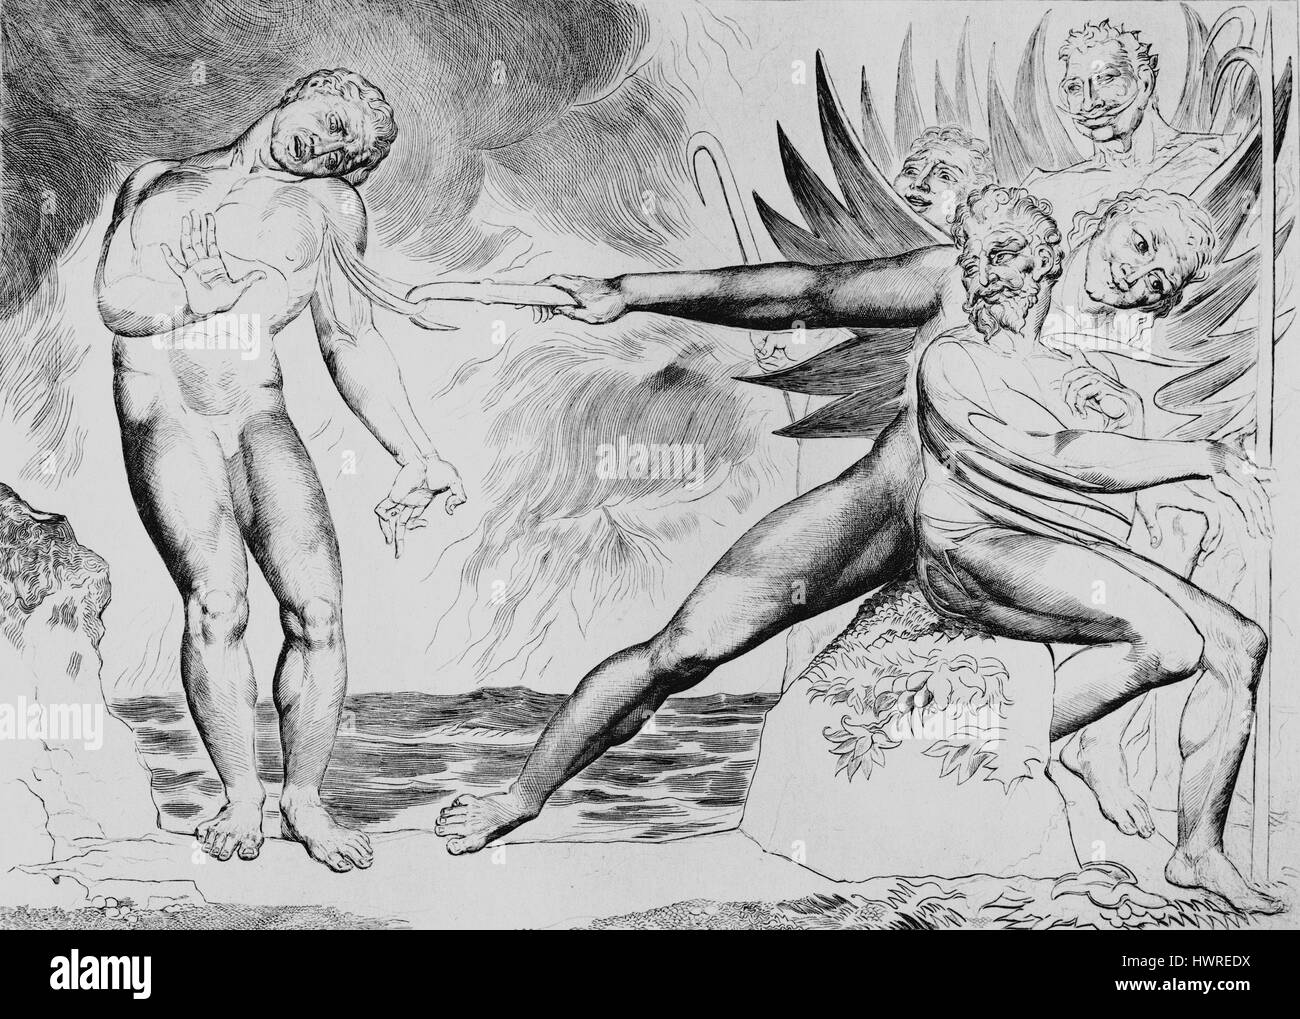 The Demons Tormenting Ceampolo by William Blake, from the illustrations to Dante; Inferno, Canto XXII, 1824. Ceampolo, - Stock Image